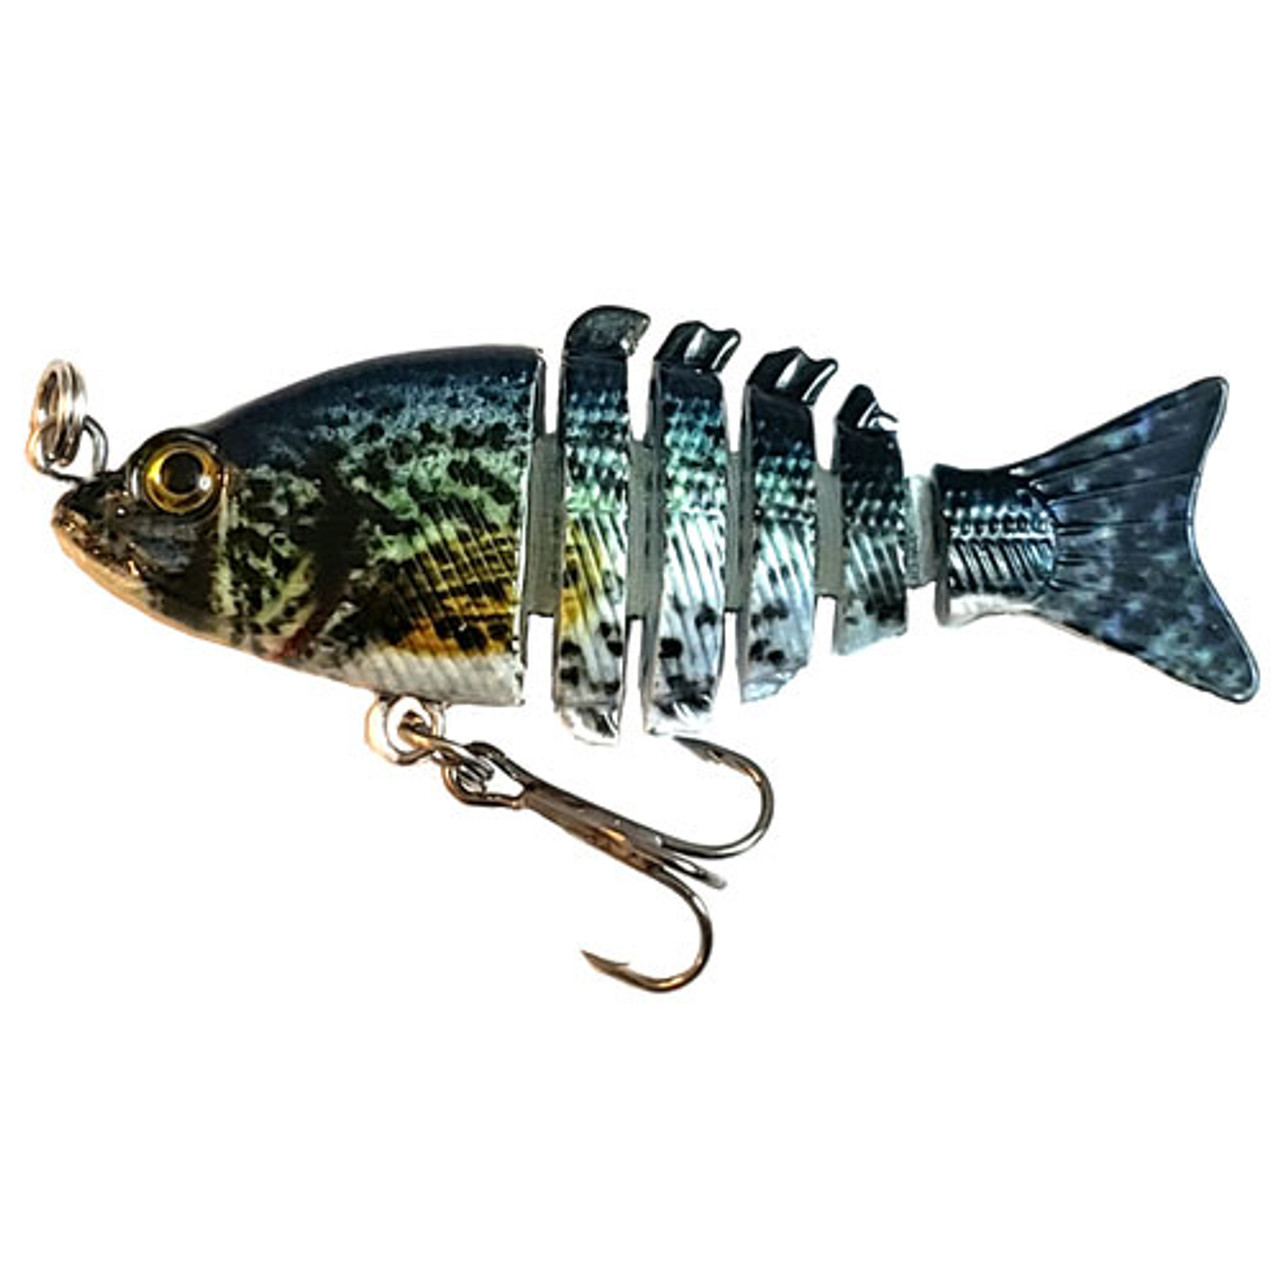 """Minnow Swim Bait 3.2/""""Jointed Fishing Lure Lowman Lures Lip Ripper"""